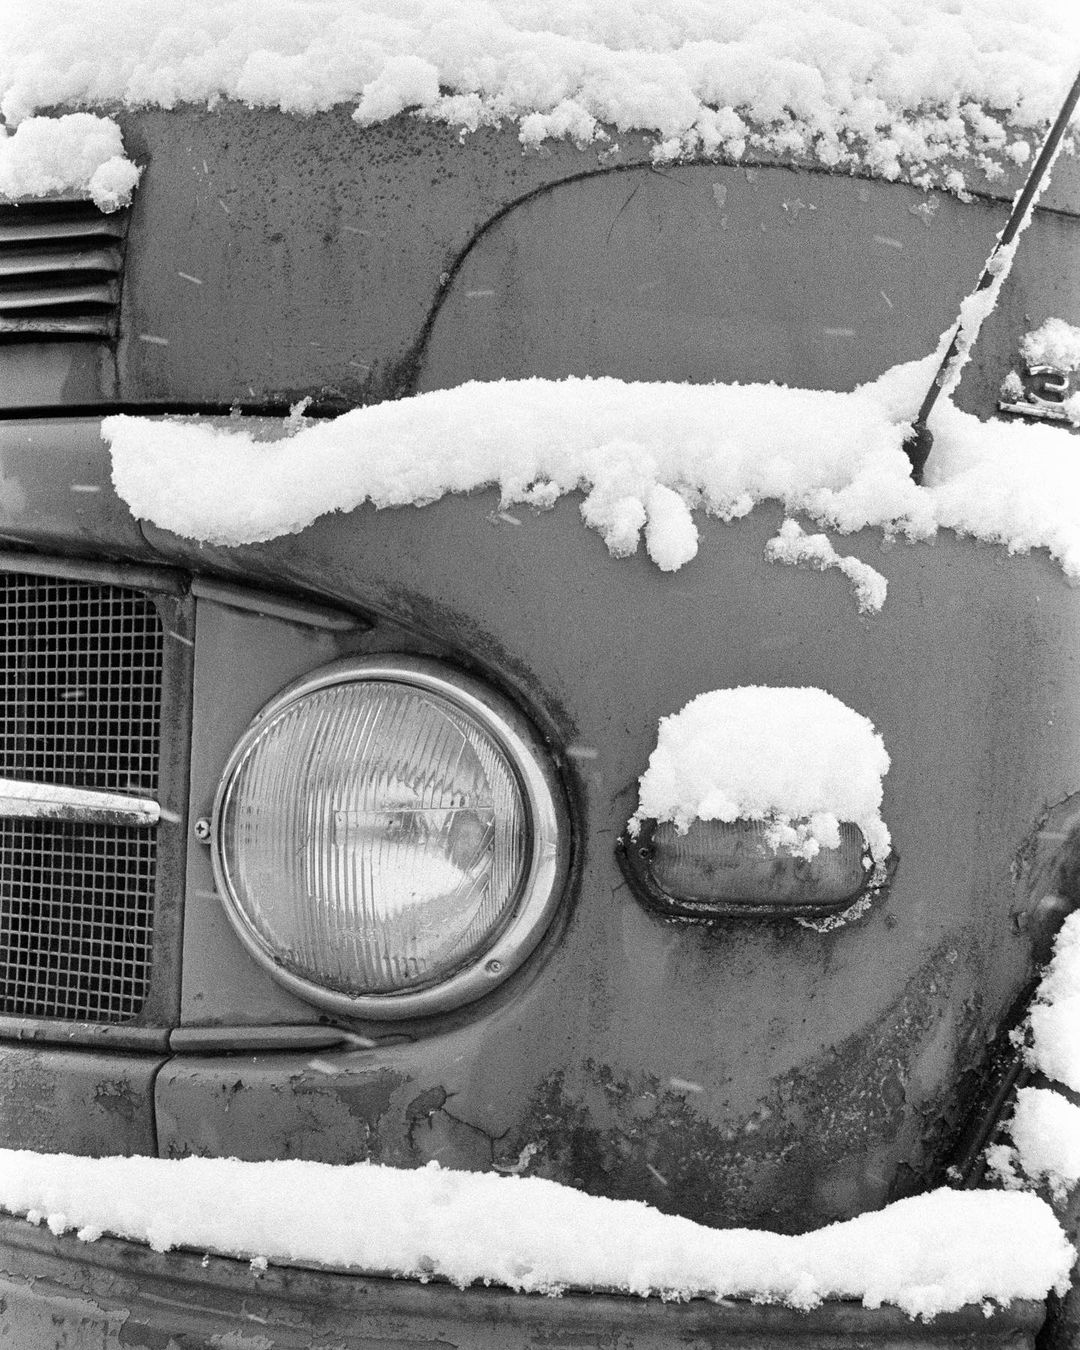 black and white film photo of a car covered in snow